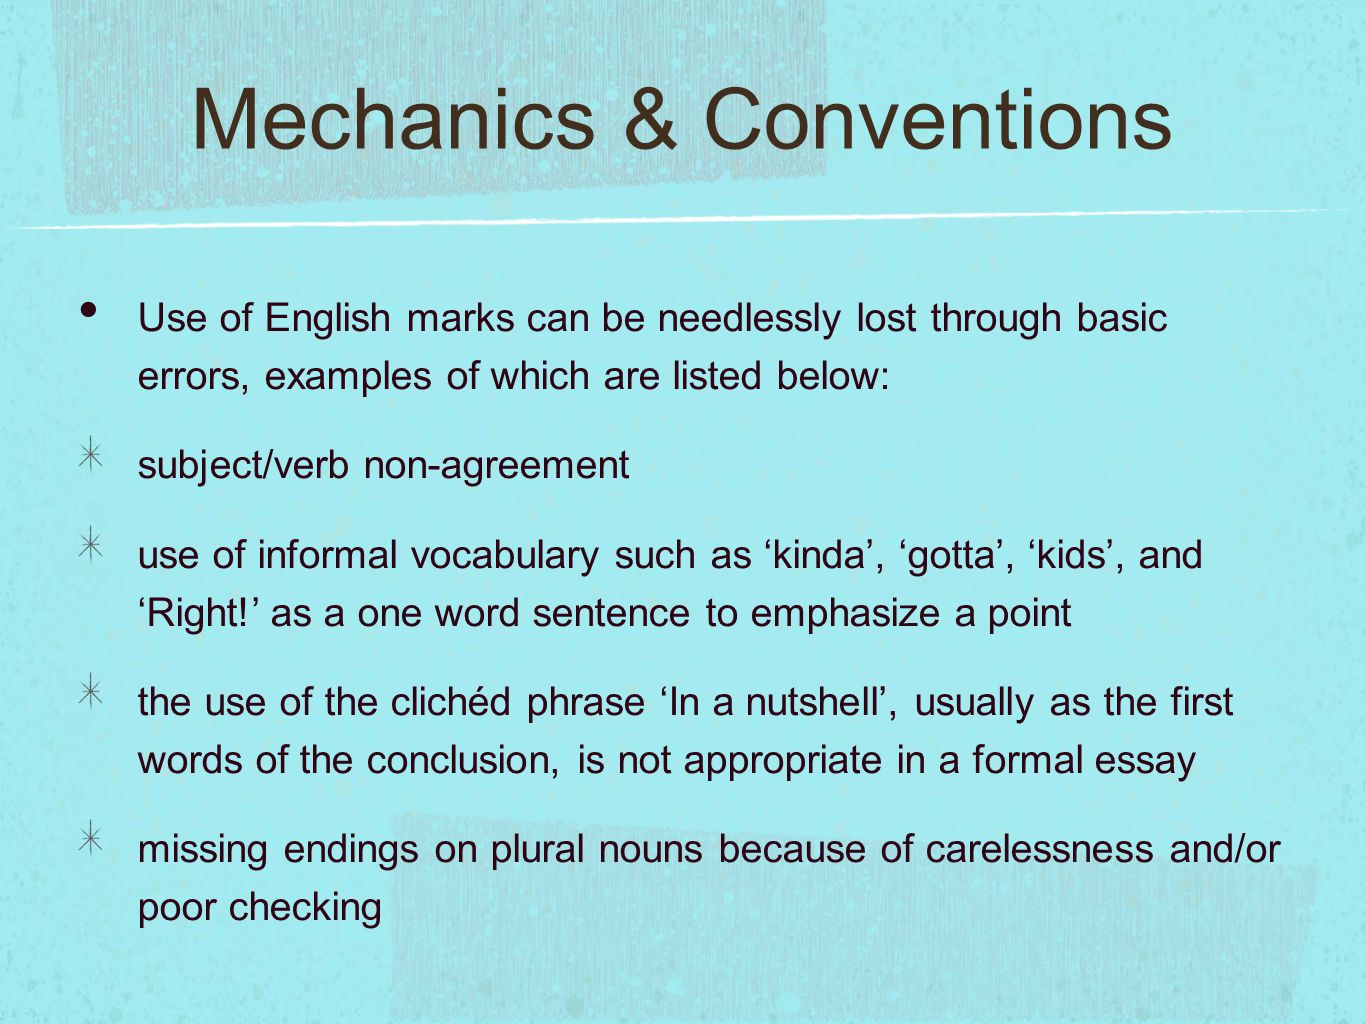 Mechanics & Conventions Use of English marks can be needlessly lost through basic errors, examples of which are listed below: subject/verb non-agreement use of informal vocabulary such as 'kinda', 'gotta', 'kids', and 'Right!' as a one word sentence to emphasize a point the use of the clichéd phrase 'In a nutshell', usually as the first words of the conclusion, is not appropriate in a formal essay missing endings on plural nouns because of carelessness and/or poor checking